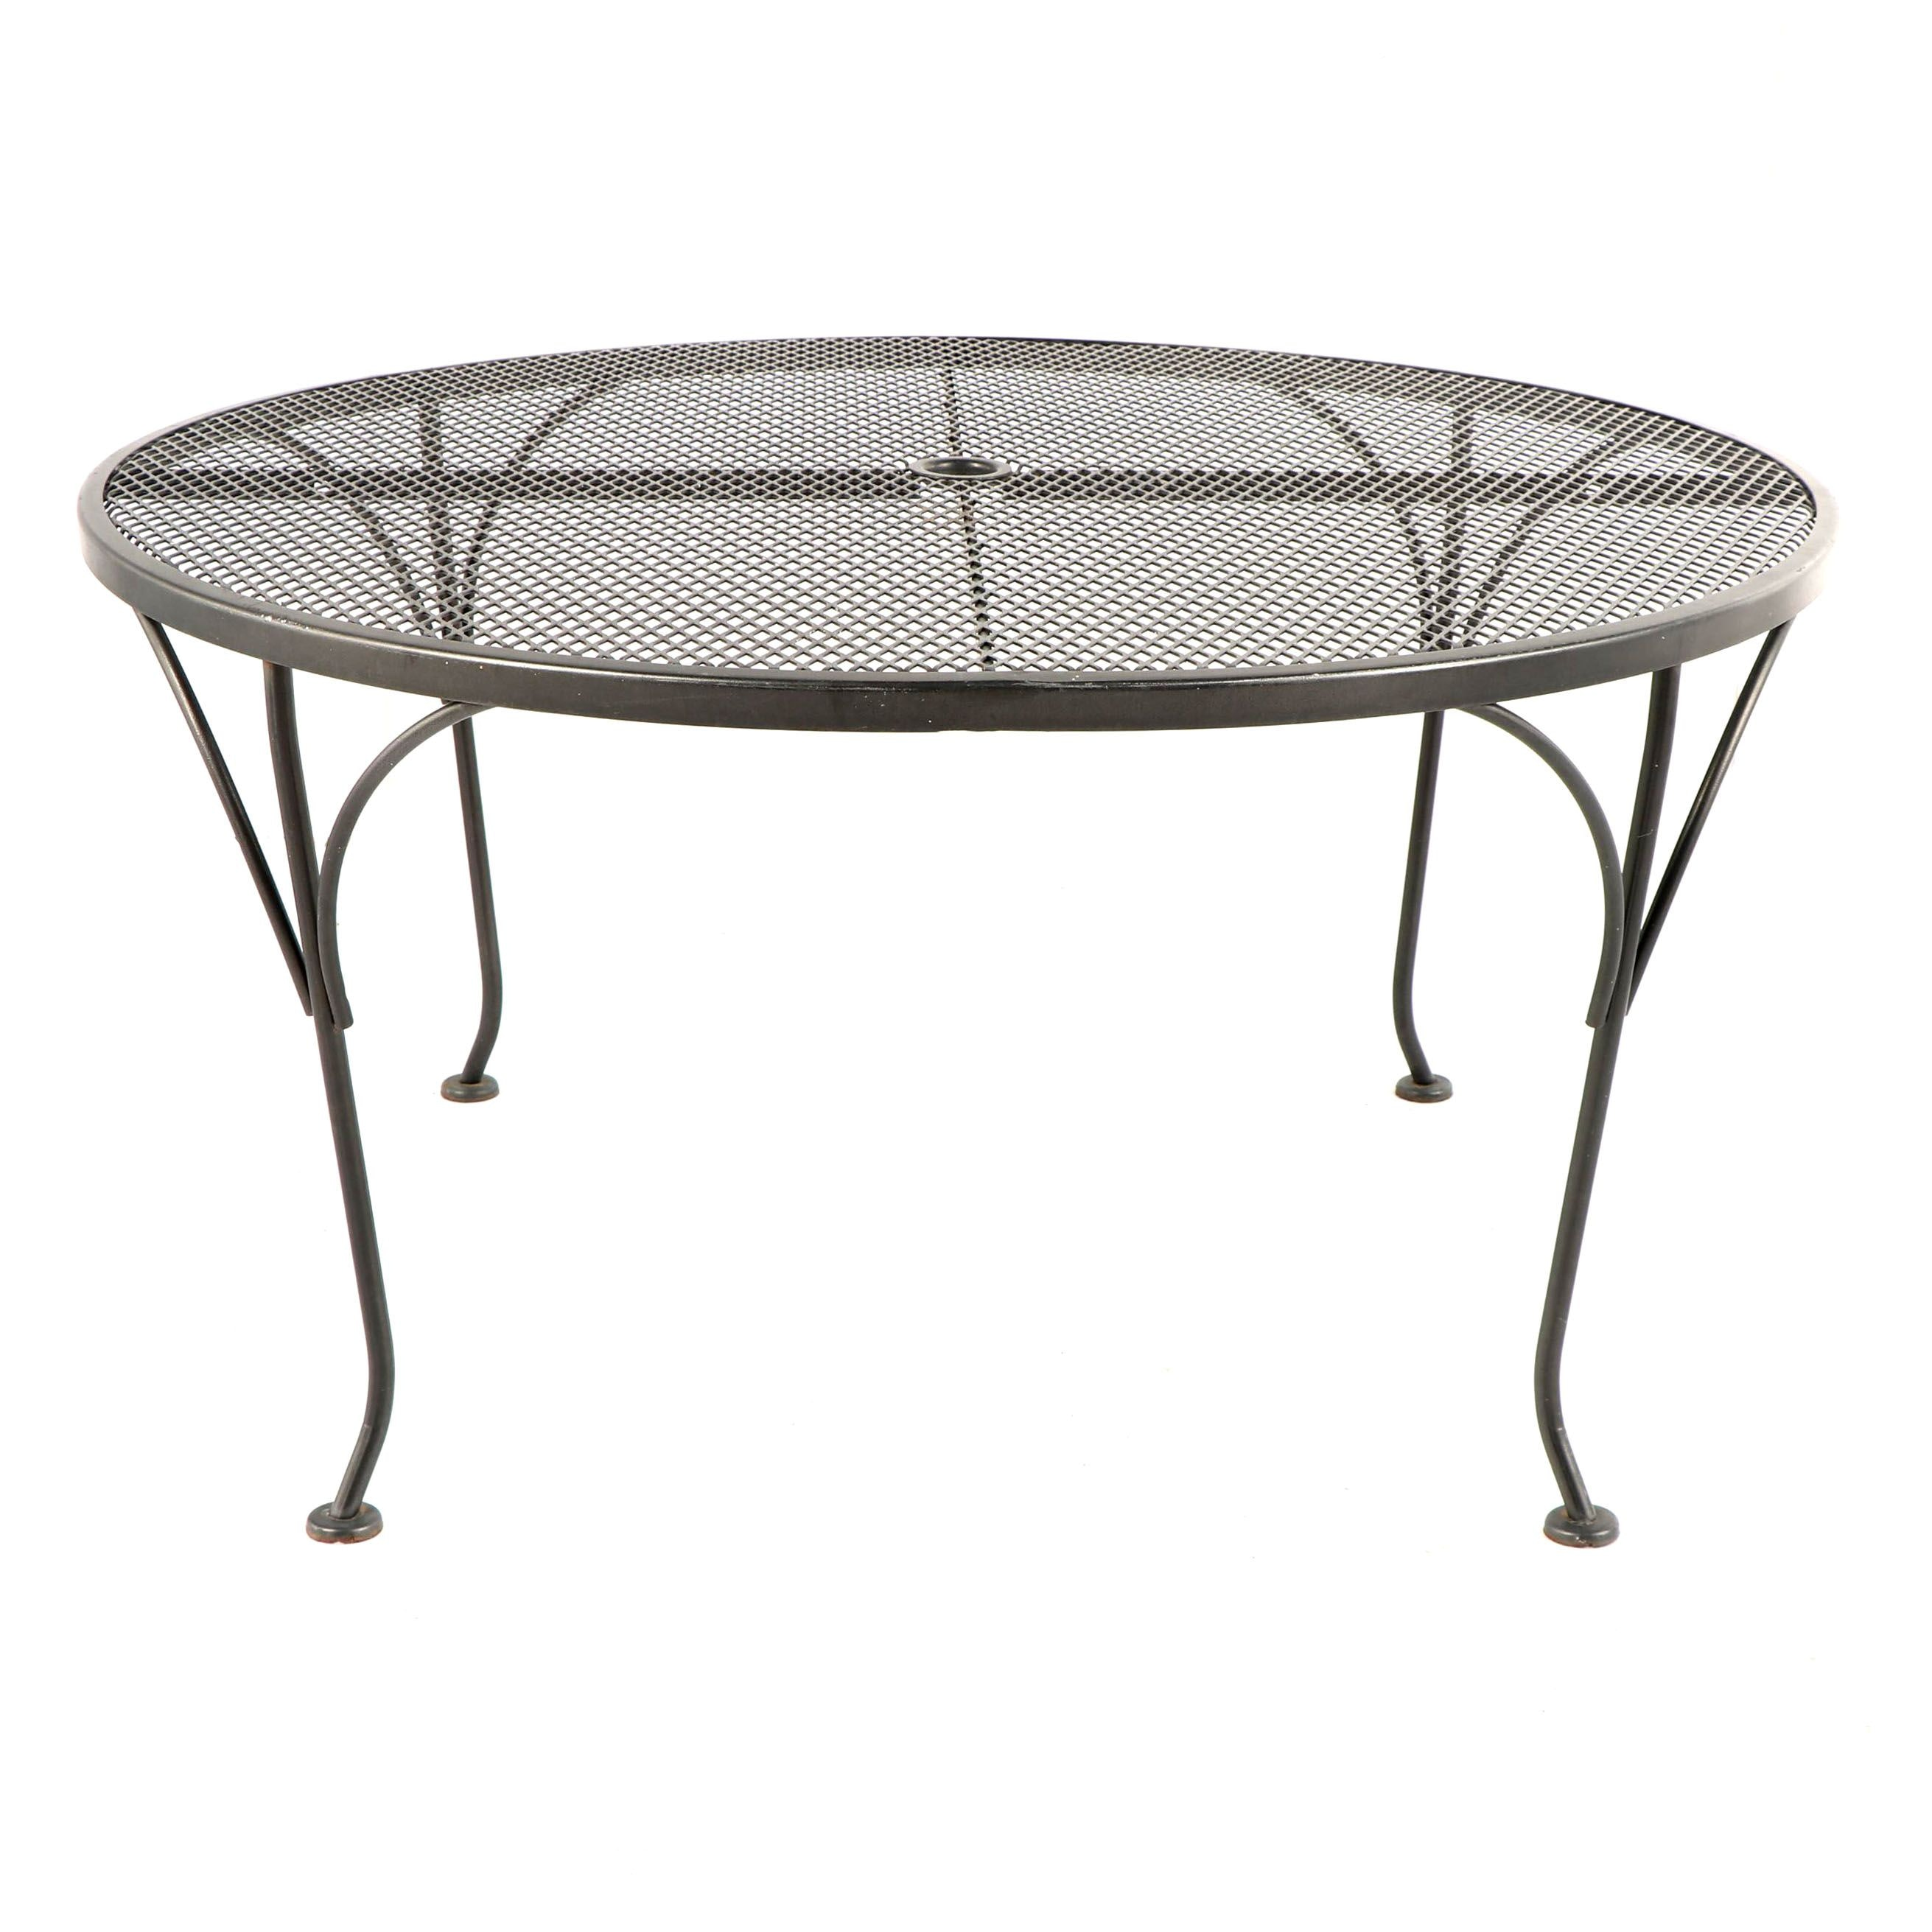 Metal with Mesh Top Patio Table